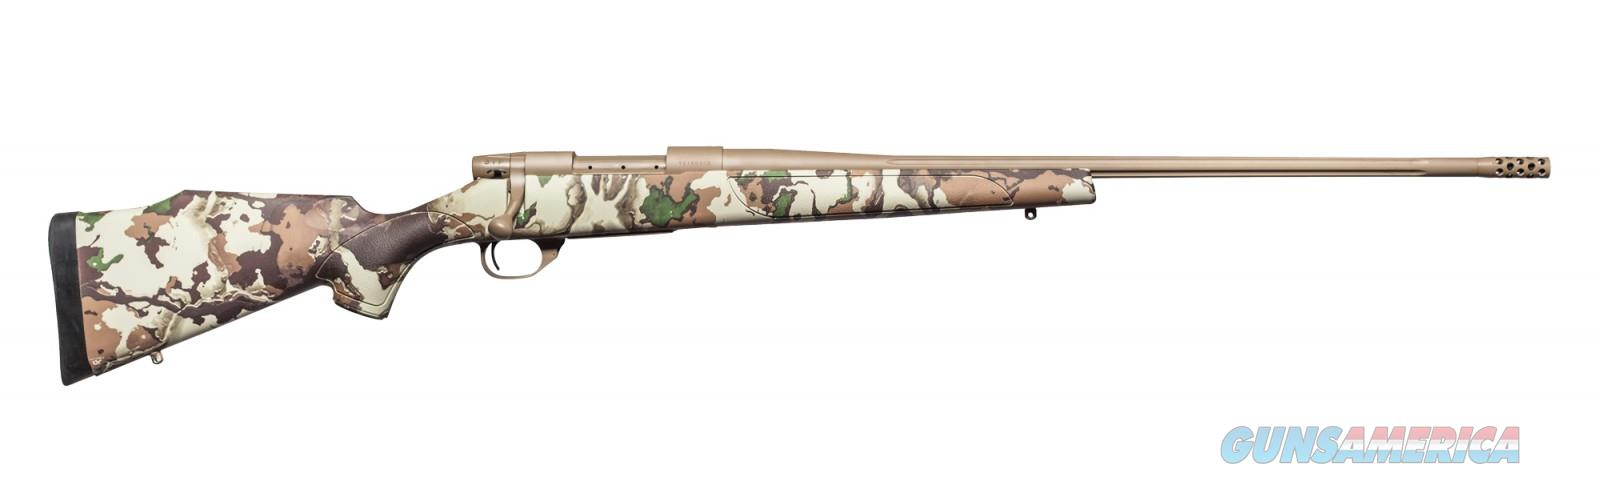 "Weatherby Vanguard First Lite .308 Win FDE 26"" VFN308NR6B   Guns > Rifles > Weatherby Rifles > Sporting"